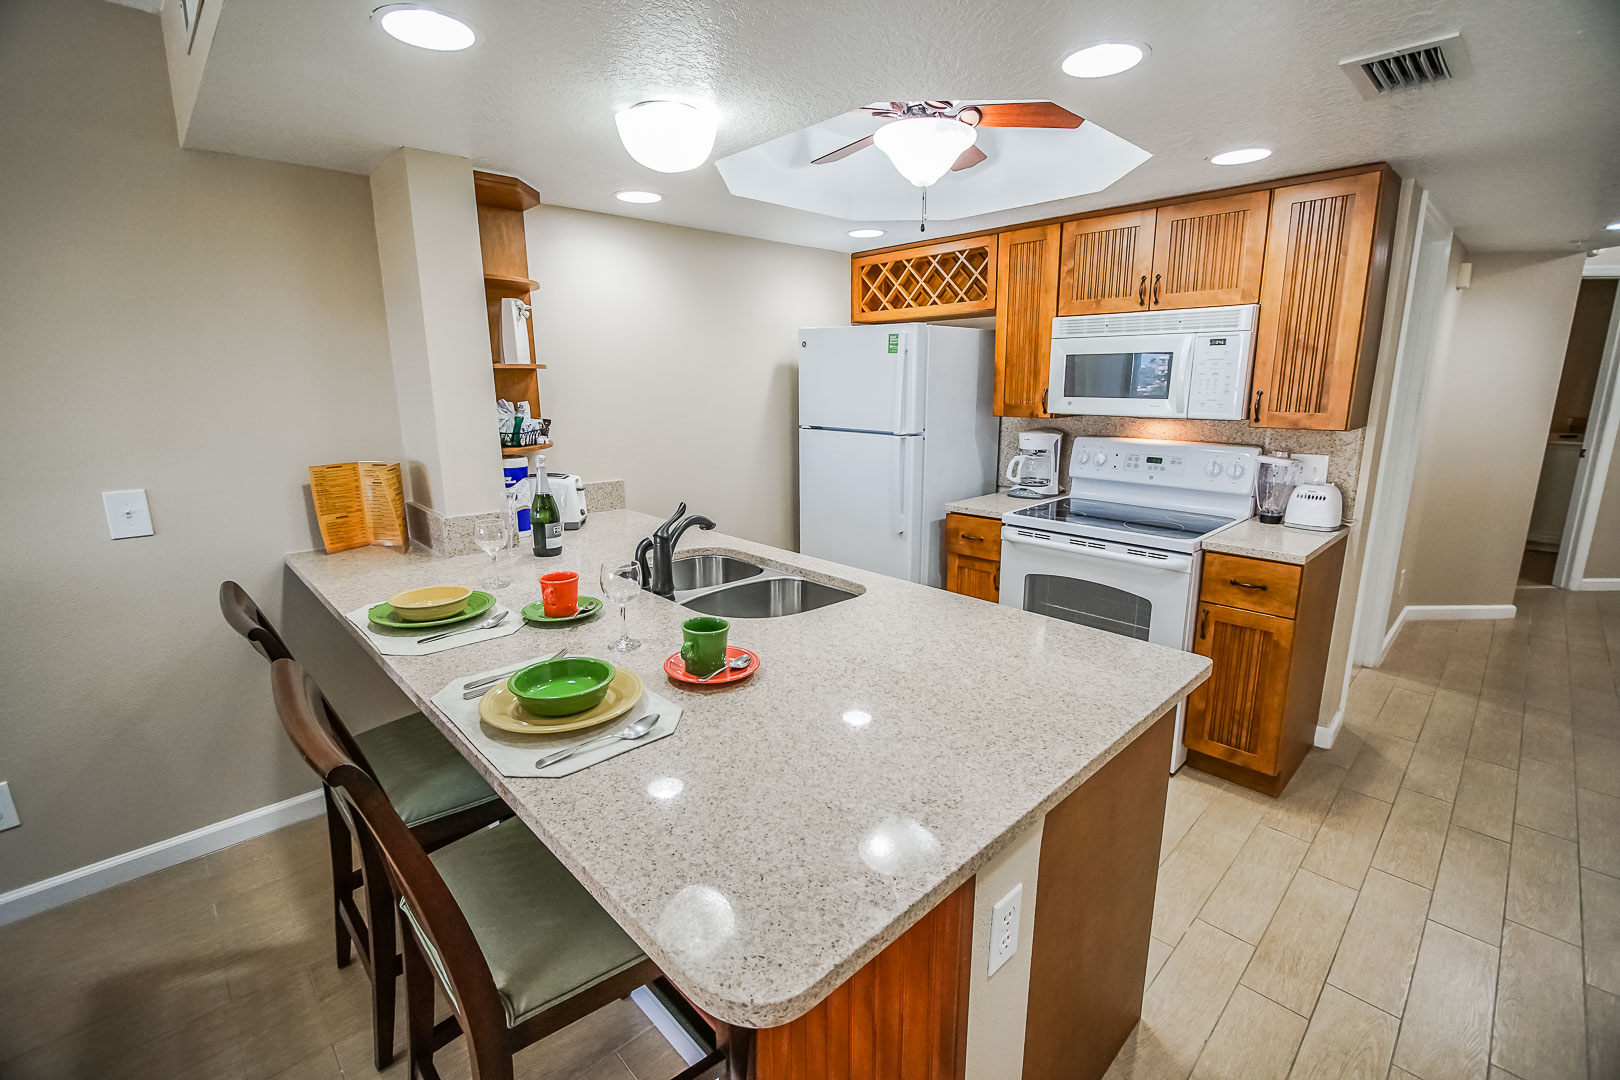 A standard kitchen at VRI's The Resort on Cocoa Beach in Florida.